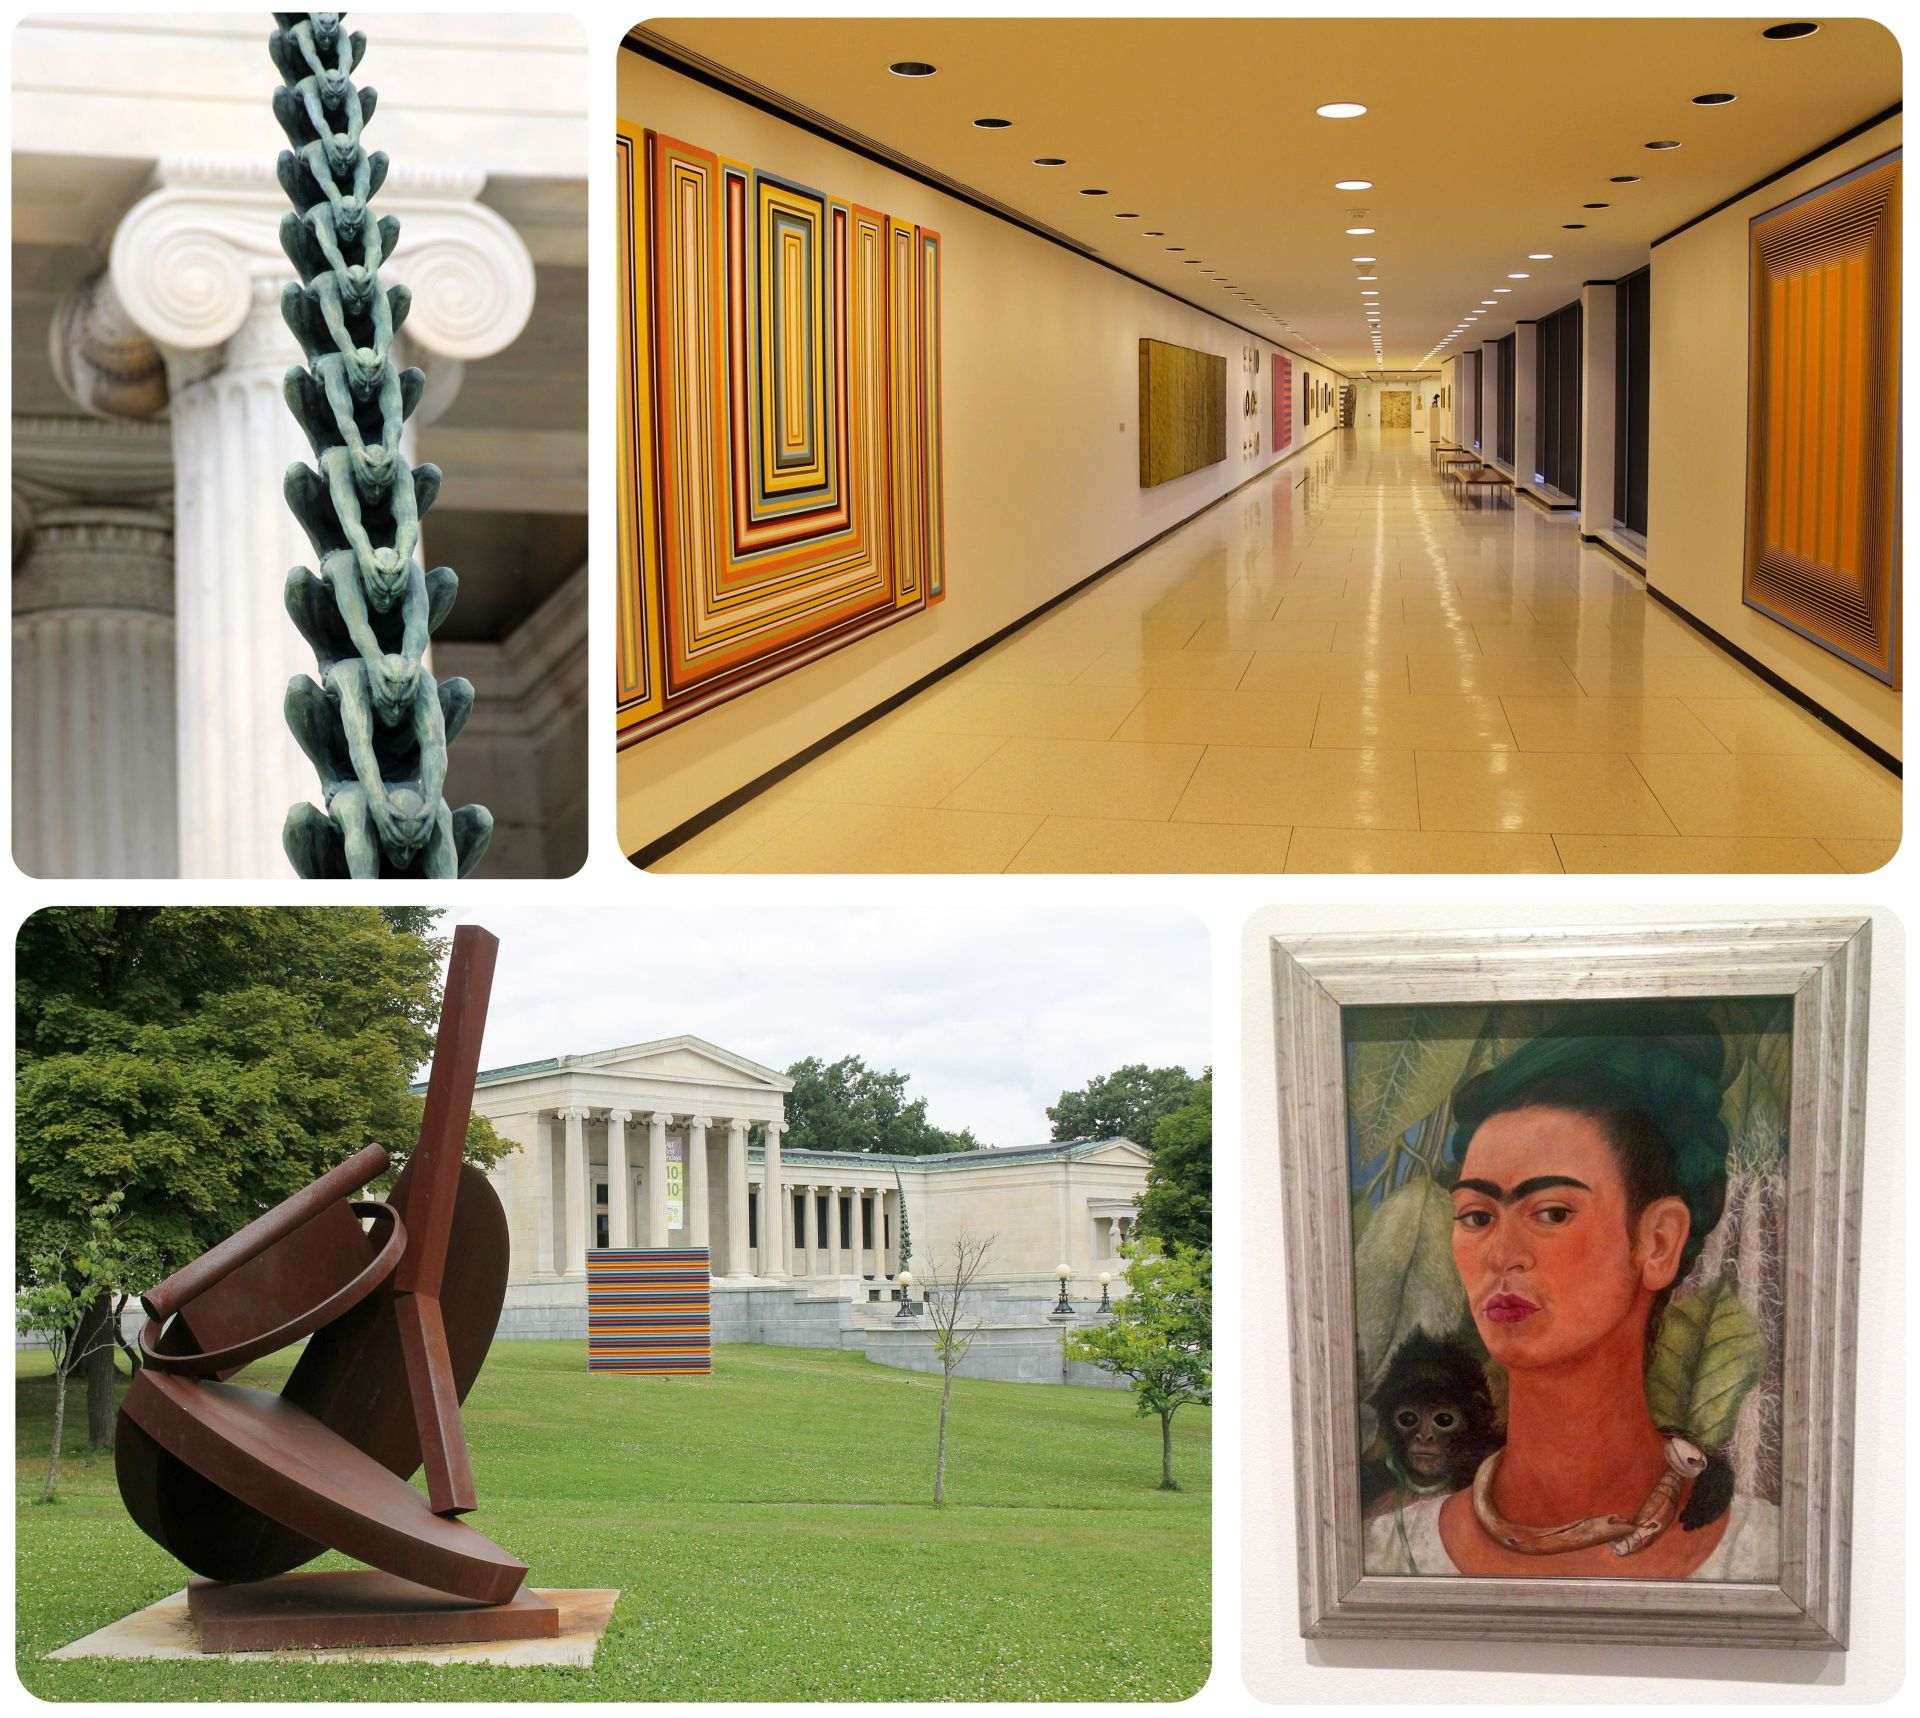 Albright Knox Gallery in Buffalo